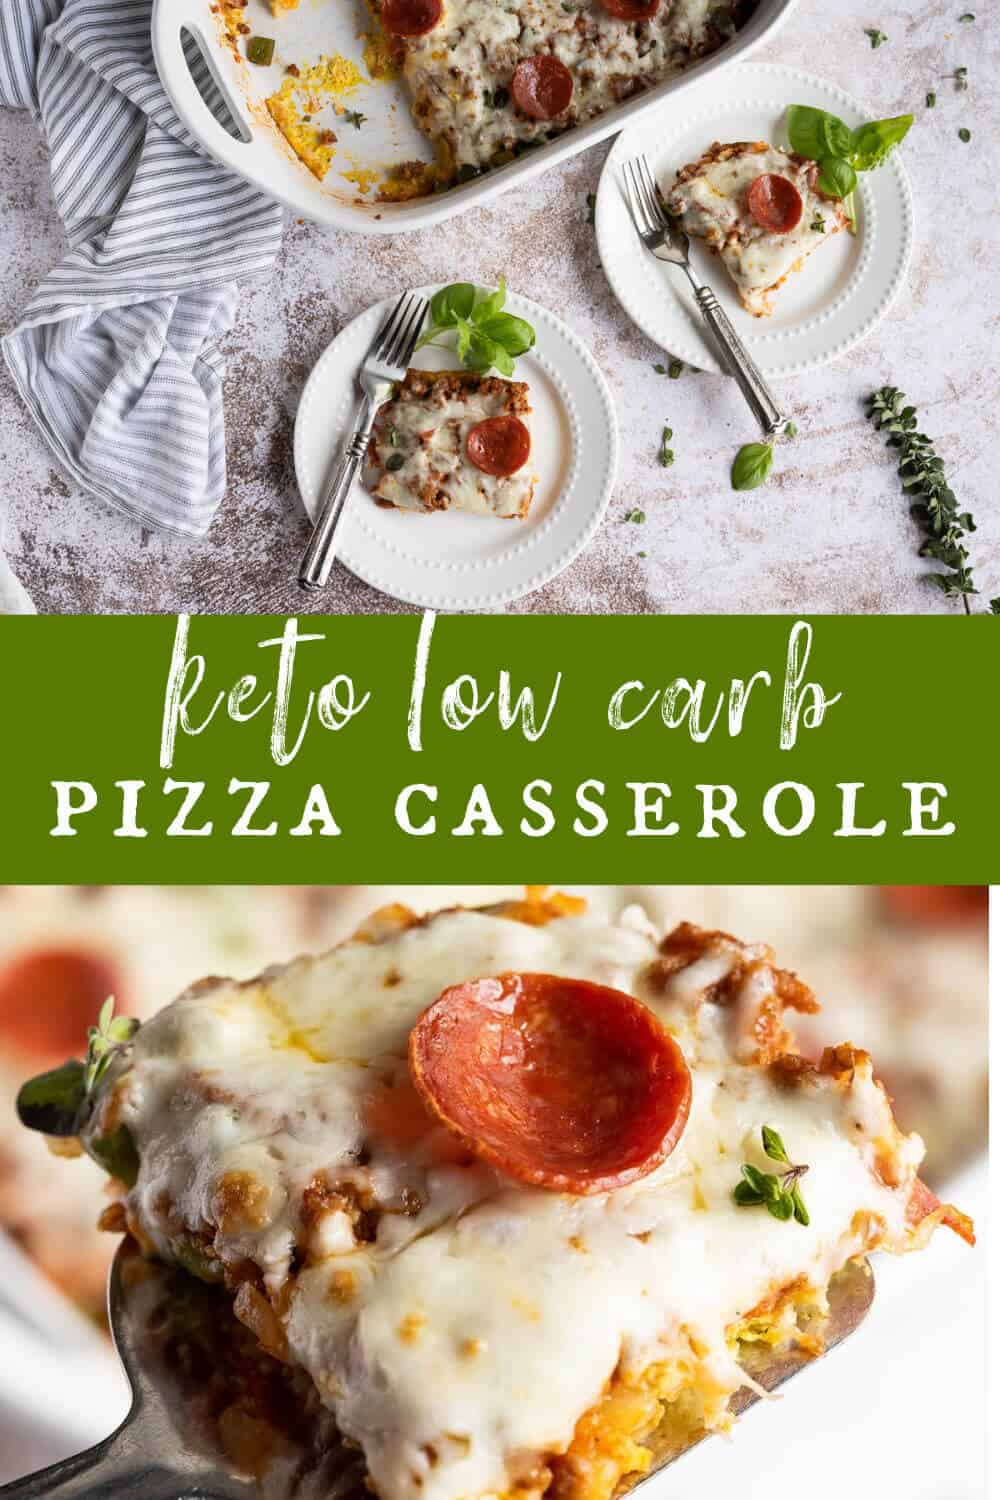 If you're eating low carb and missing pizza, This Low Carb Pizza Casserole is THE RECIPE for you! It's full of traditional pizza toppings and melty, gooey cheese, then baked in an easy casserole style. Welcome back Pizza Movie Nights! via @artfrommytable